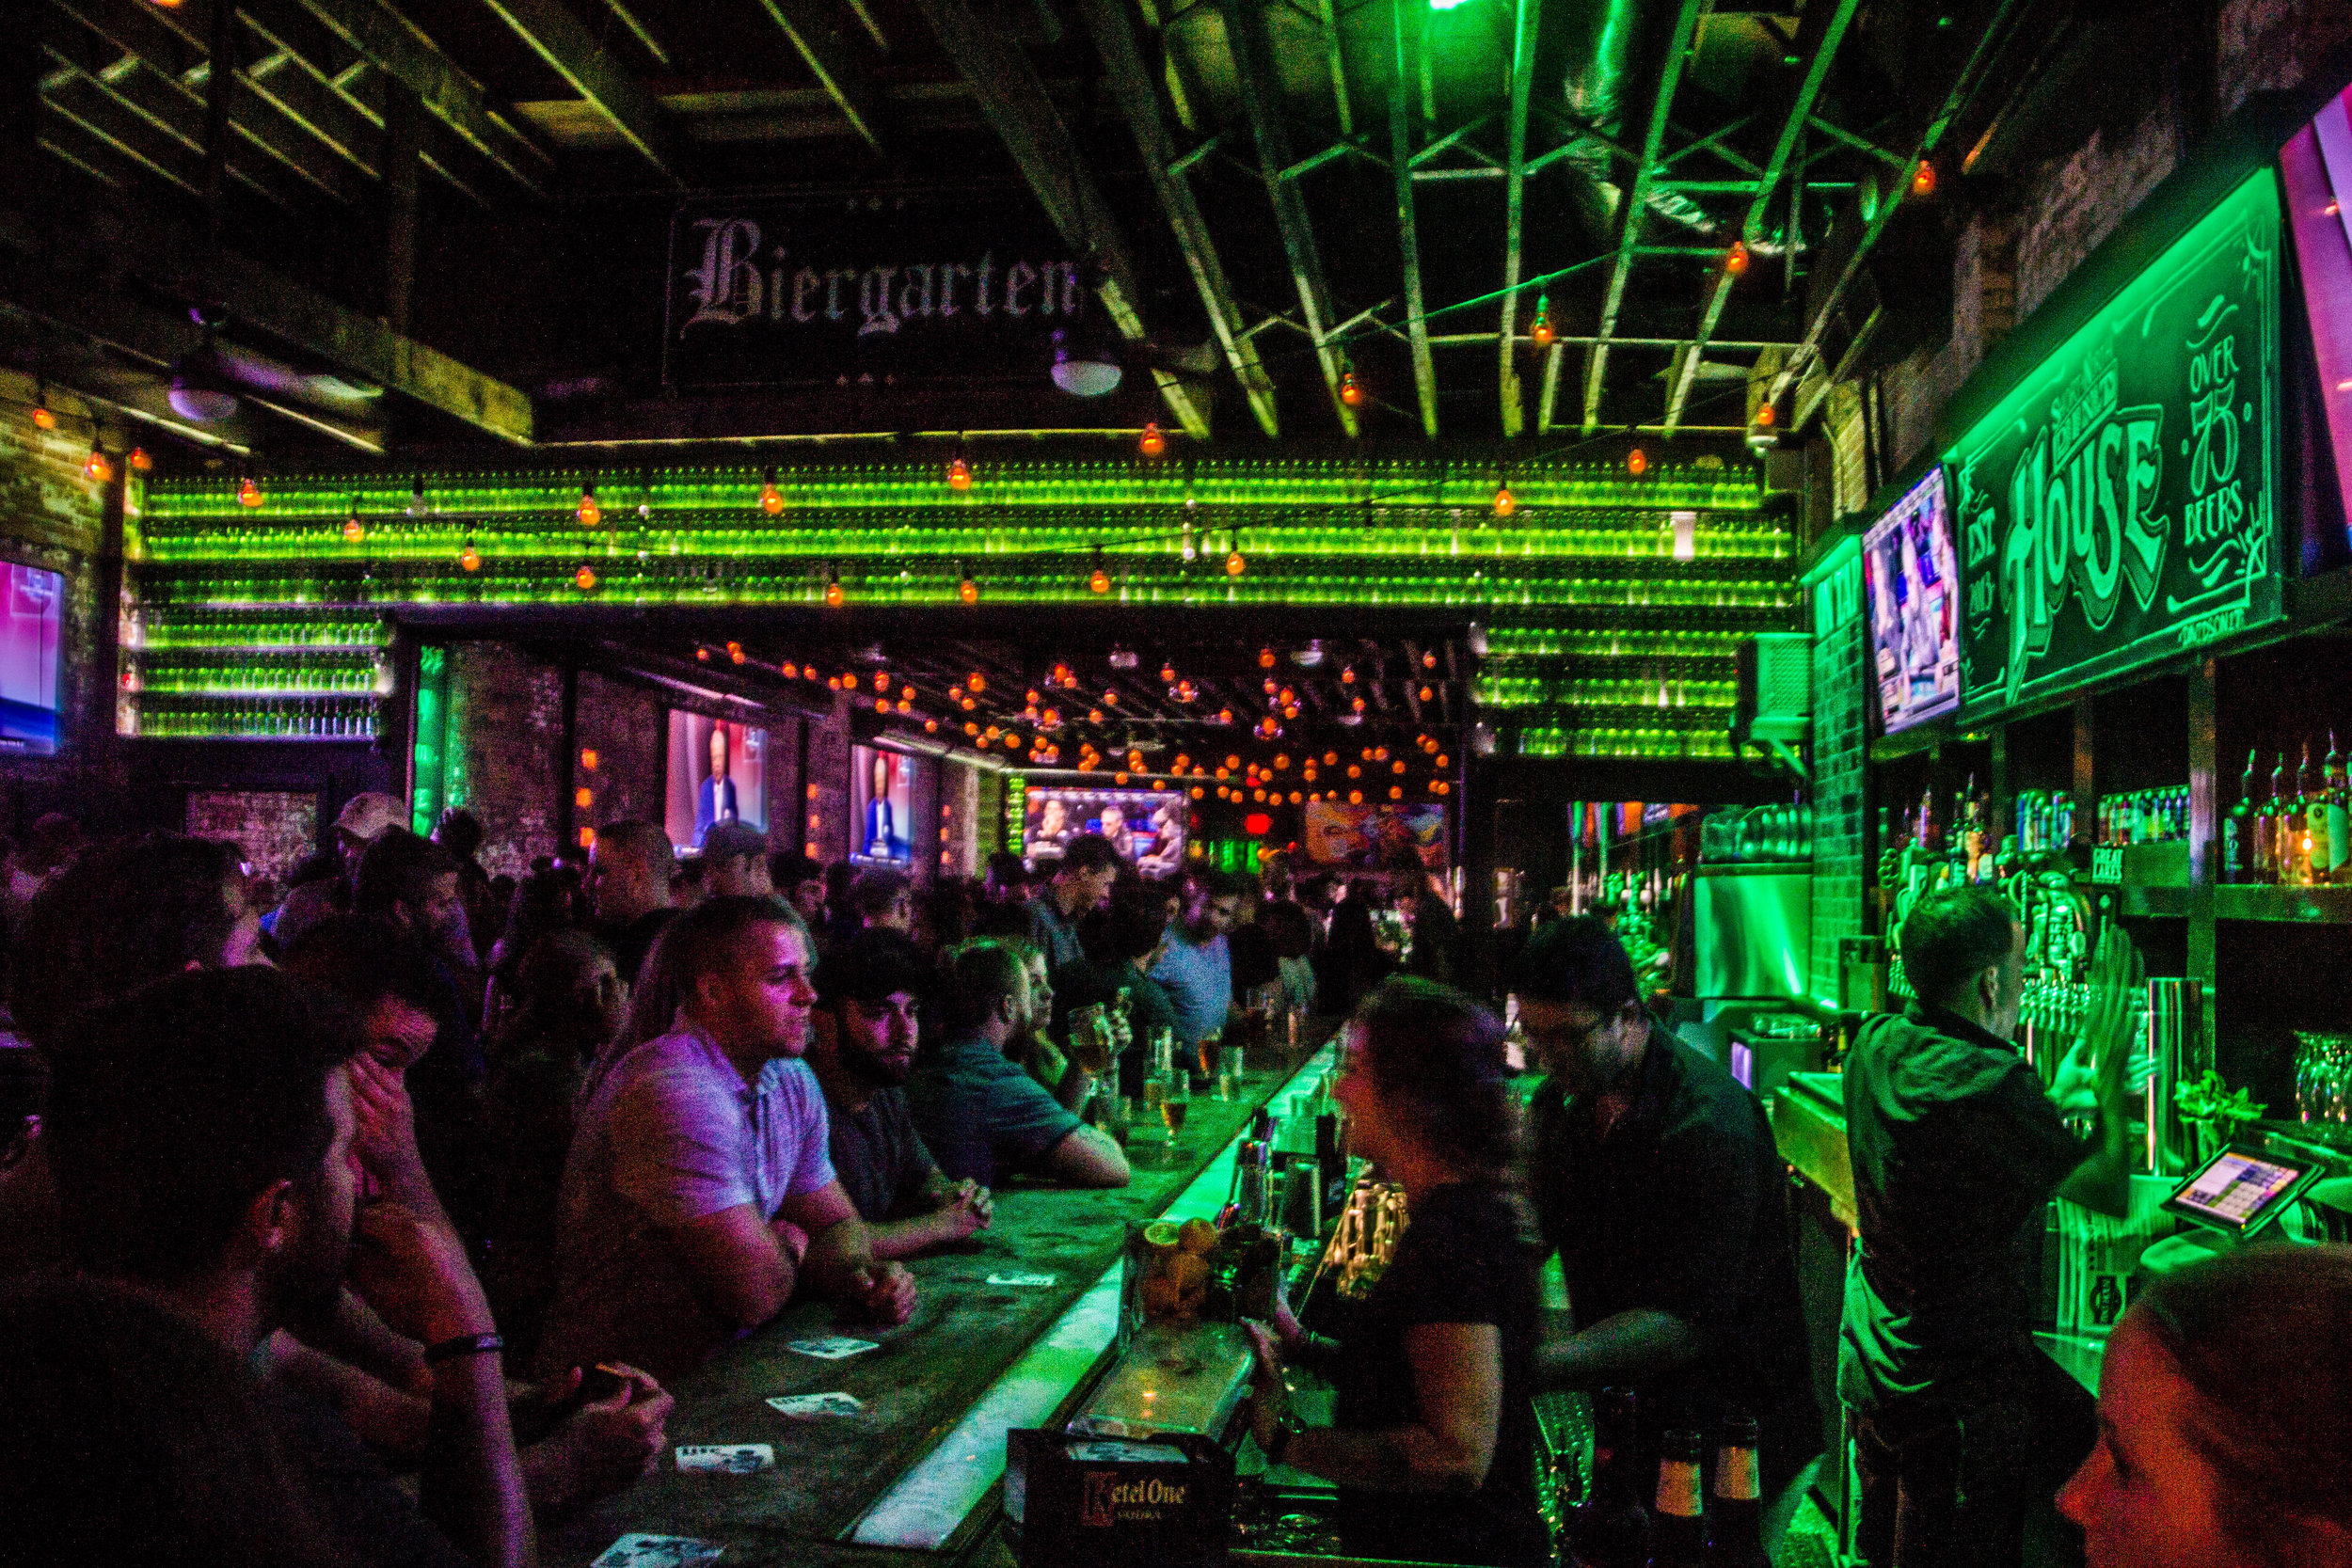 pint-house-columbus-ohio-bars-3.jpg